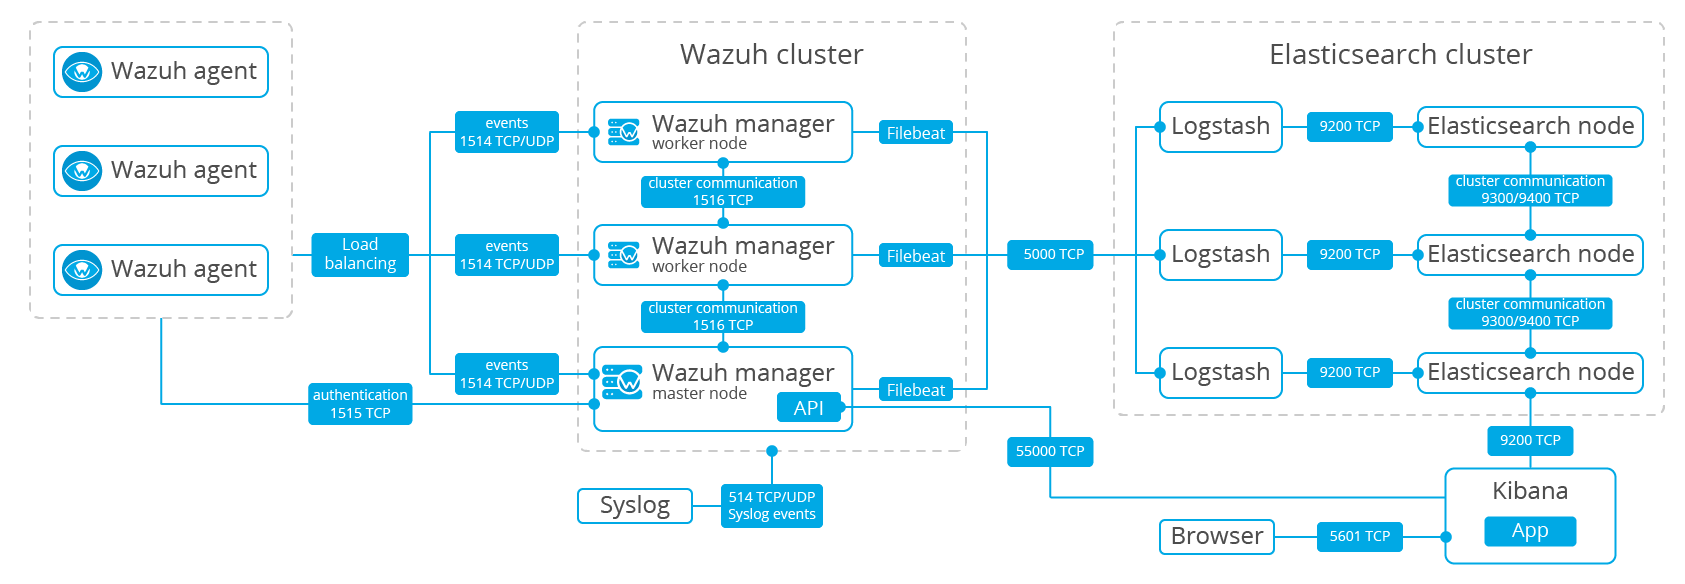 Architecture ‐ Getting started · Wazuh 3 8 documentation